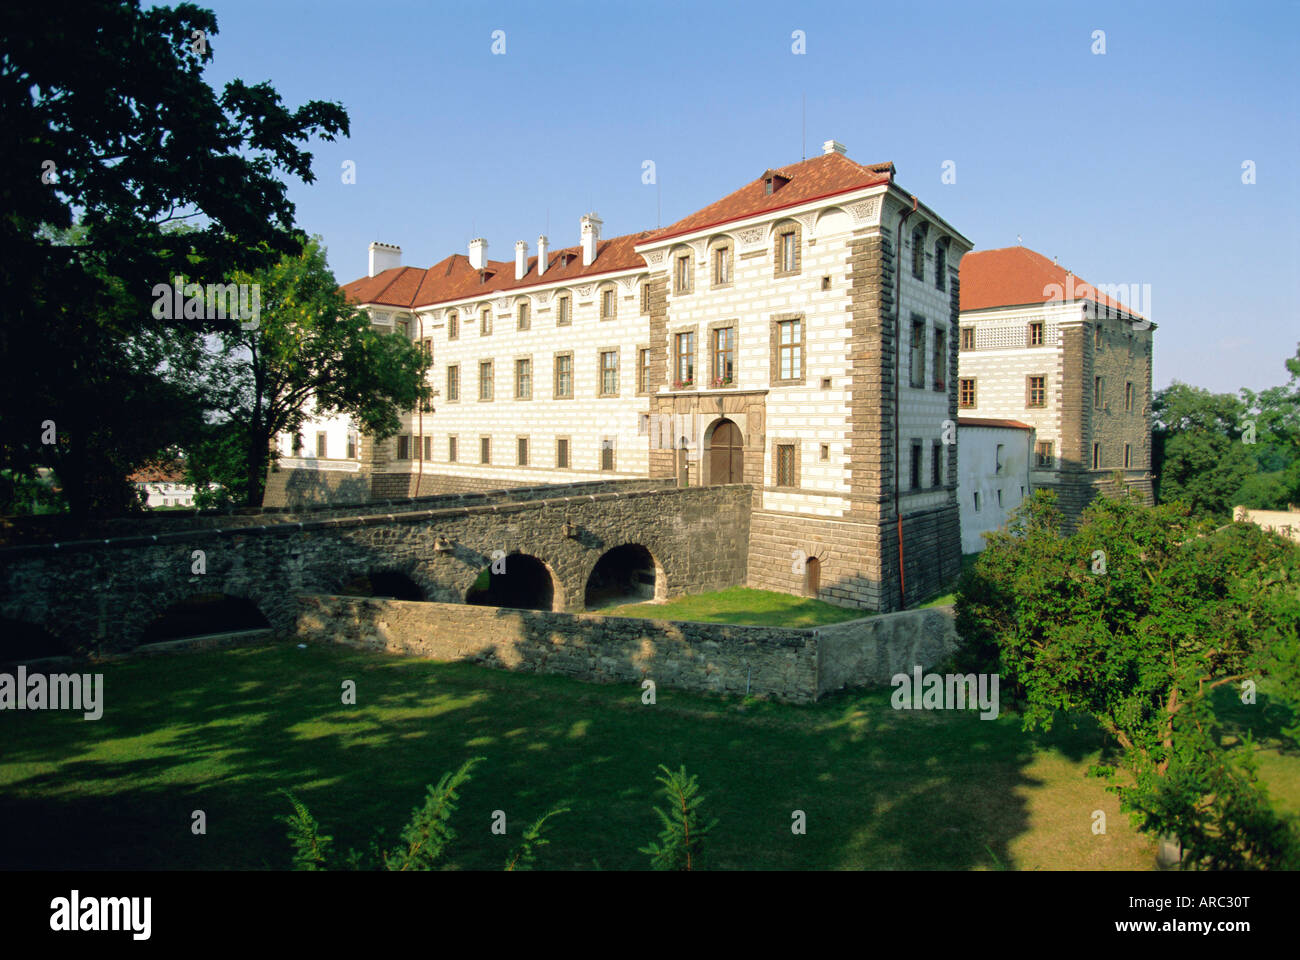 Castle at Nelahozeves, Central Bohemia, Czech Republic, Europe - Stock Image